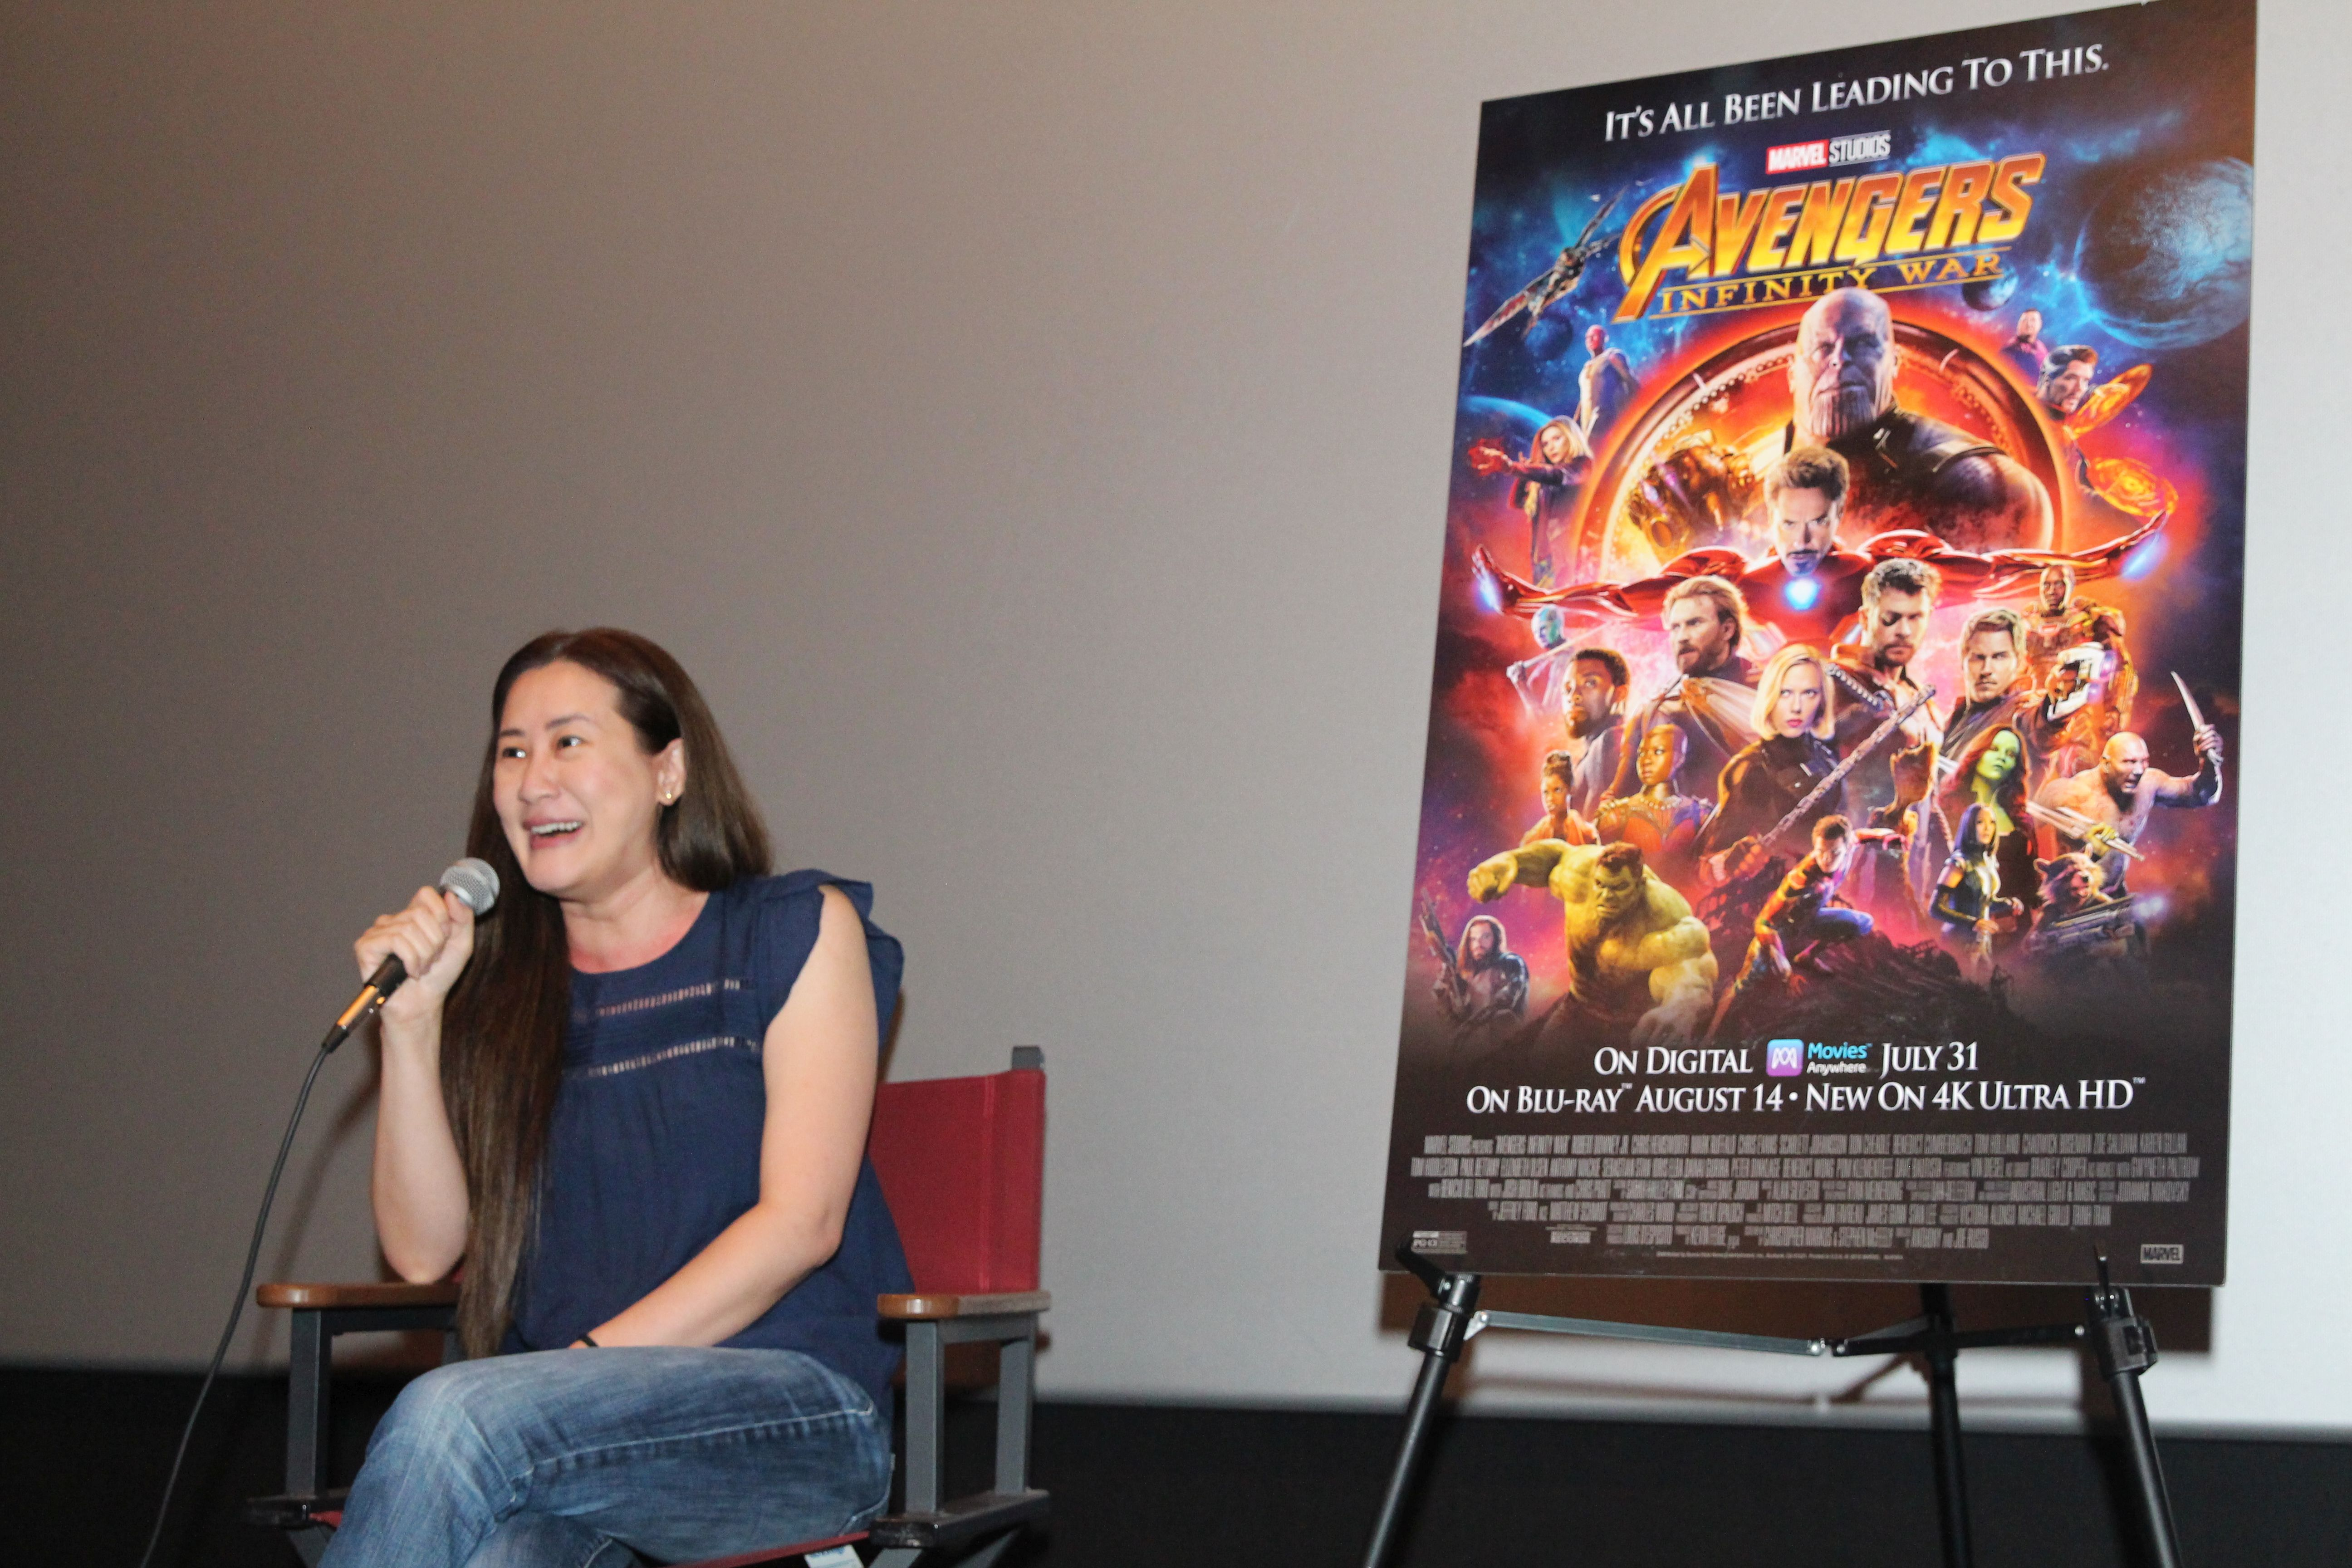 Madame Tussauds with The Avengers & Executive Producer Trinh Tran